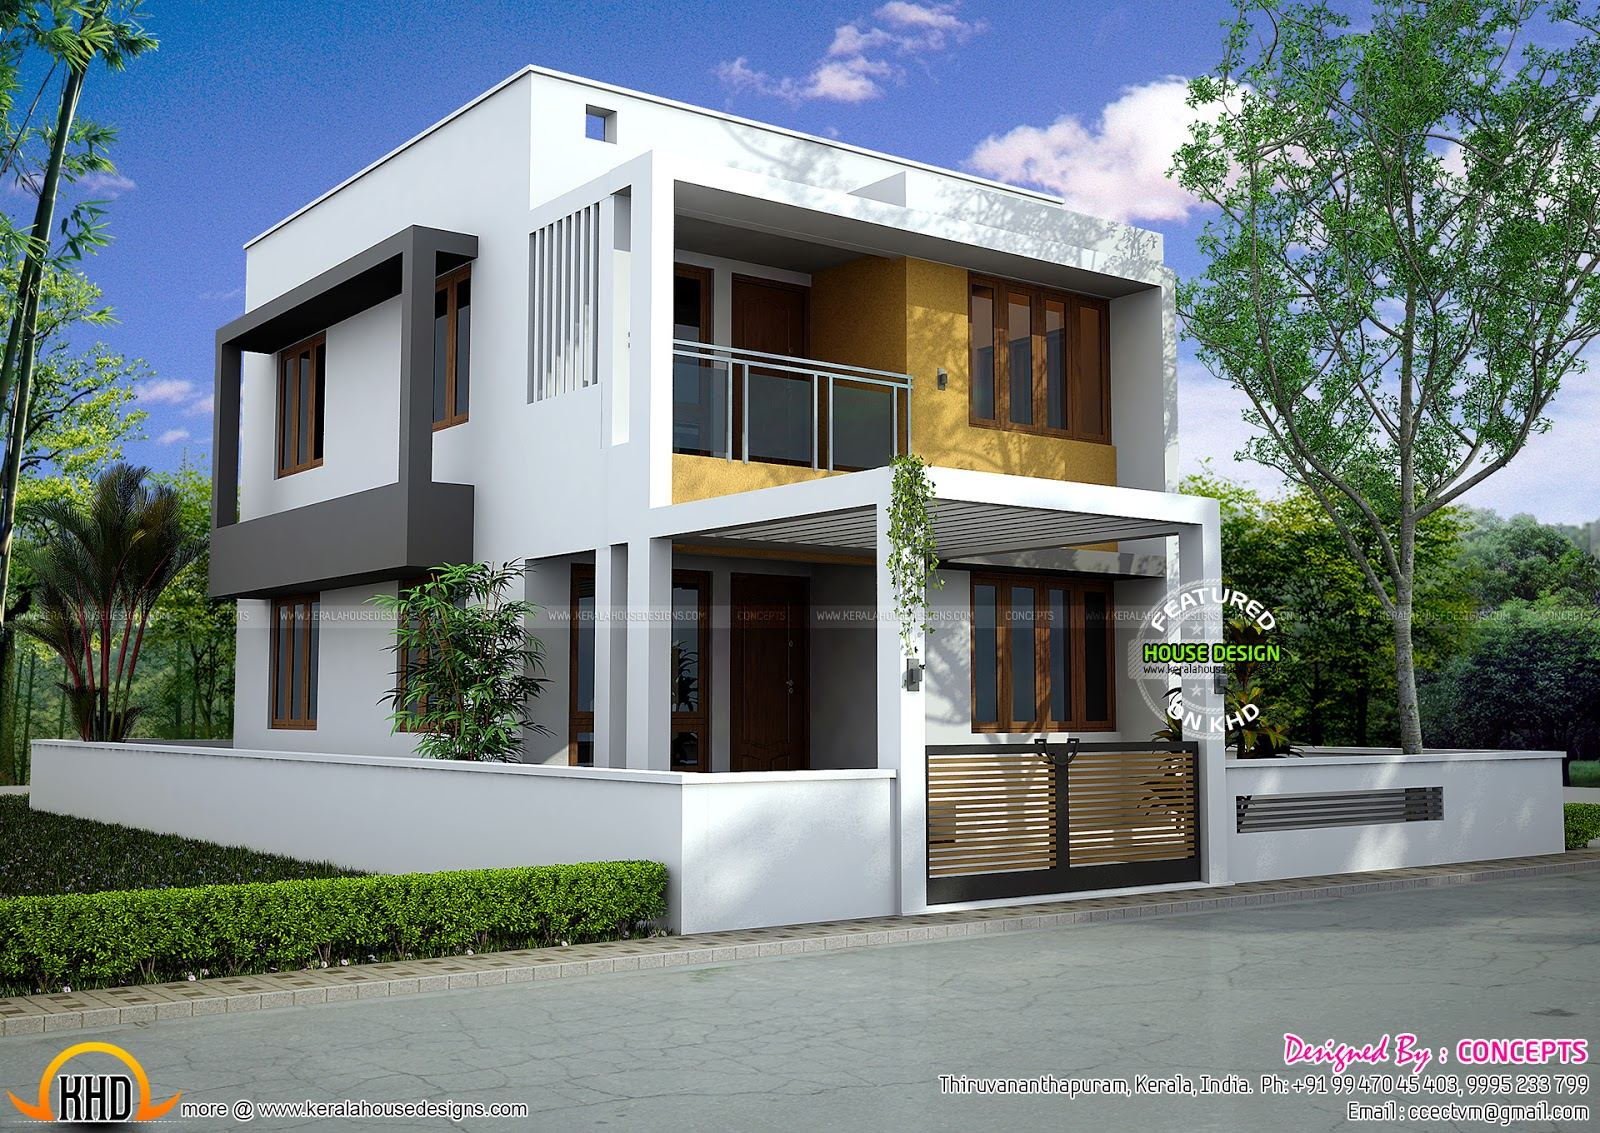 Floor plan of modern 3 bedroom house kerala home design for 3 bedroom contemporary house plans